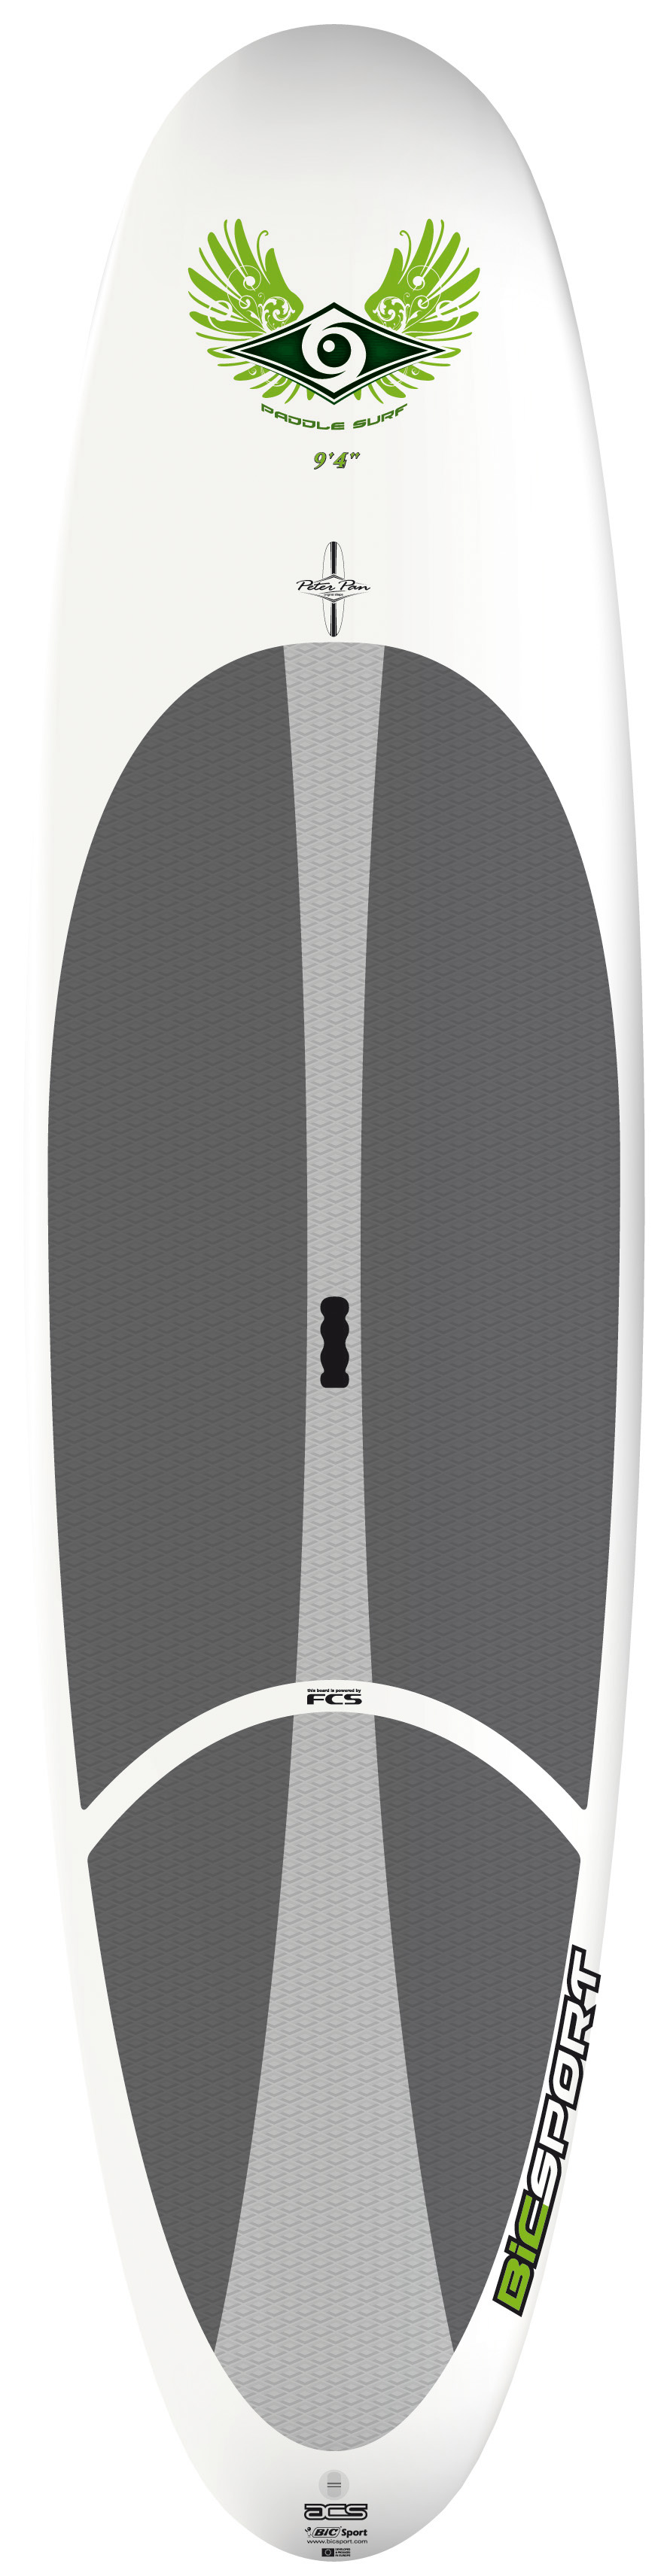 "Surf Designed for beginner to intermediate riders up to 180lbs/80kg.With the same great handling and evenly spread volume distribution as it's bigger brother, the 10'4"" ACS SUP is as easy to ride in flatwater, with superb directional stability, as it is maneuverable in small waves. Combine an ultra-durable polyethylene outer shell (like a kayak but lighter weight) with a full polyurethane foam core (like a surfboard) and what do you get? An extremely durable board for less money than you'd expect. Thermoformed in steel molds, ensuring consistent and accurate reproduction of the original shape. Proven and long lasting with great performance, ACS boards are aimed at beginner riders just getting into the sport looking for a strong, stable board for flatwater paddling with the potential to progress into surfing. They're ideally suited to surf and SUP schools looking for strong, easy to use equipment that students can make rapid progress on. All ACS boards feature the FCS fin system, a premium diamond groove EVA deck pad and ergo-grip carry handle.Key Features of the Bic ACS SUP Paddleboard 9' 4"": Length: 9'4in/285cm Width: 27.5in/70cm Volume: 120L Weight: 30lbs/16Kg Fin set-up: FCS Dolphin 10"" Shaper: Peter Pan - $694.95"